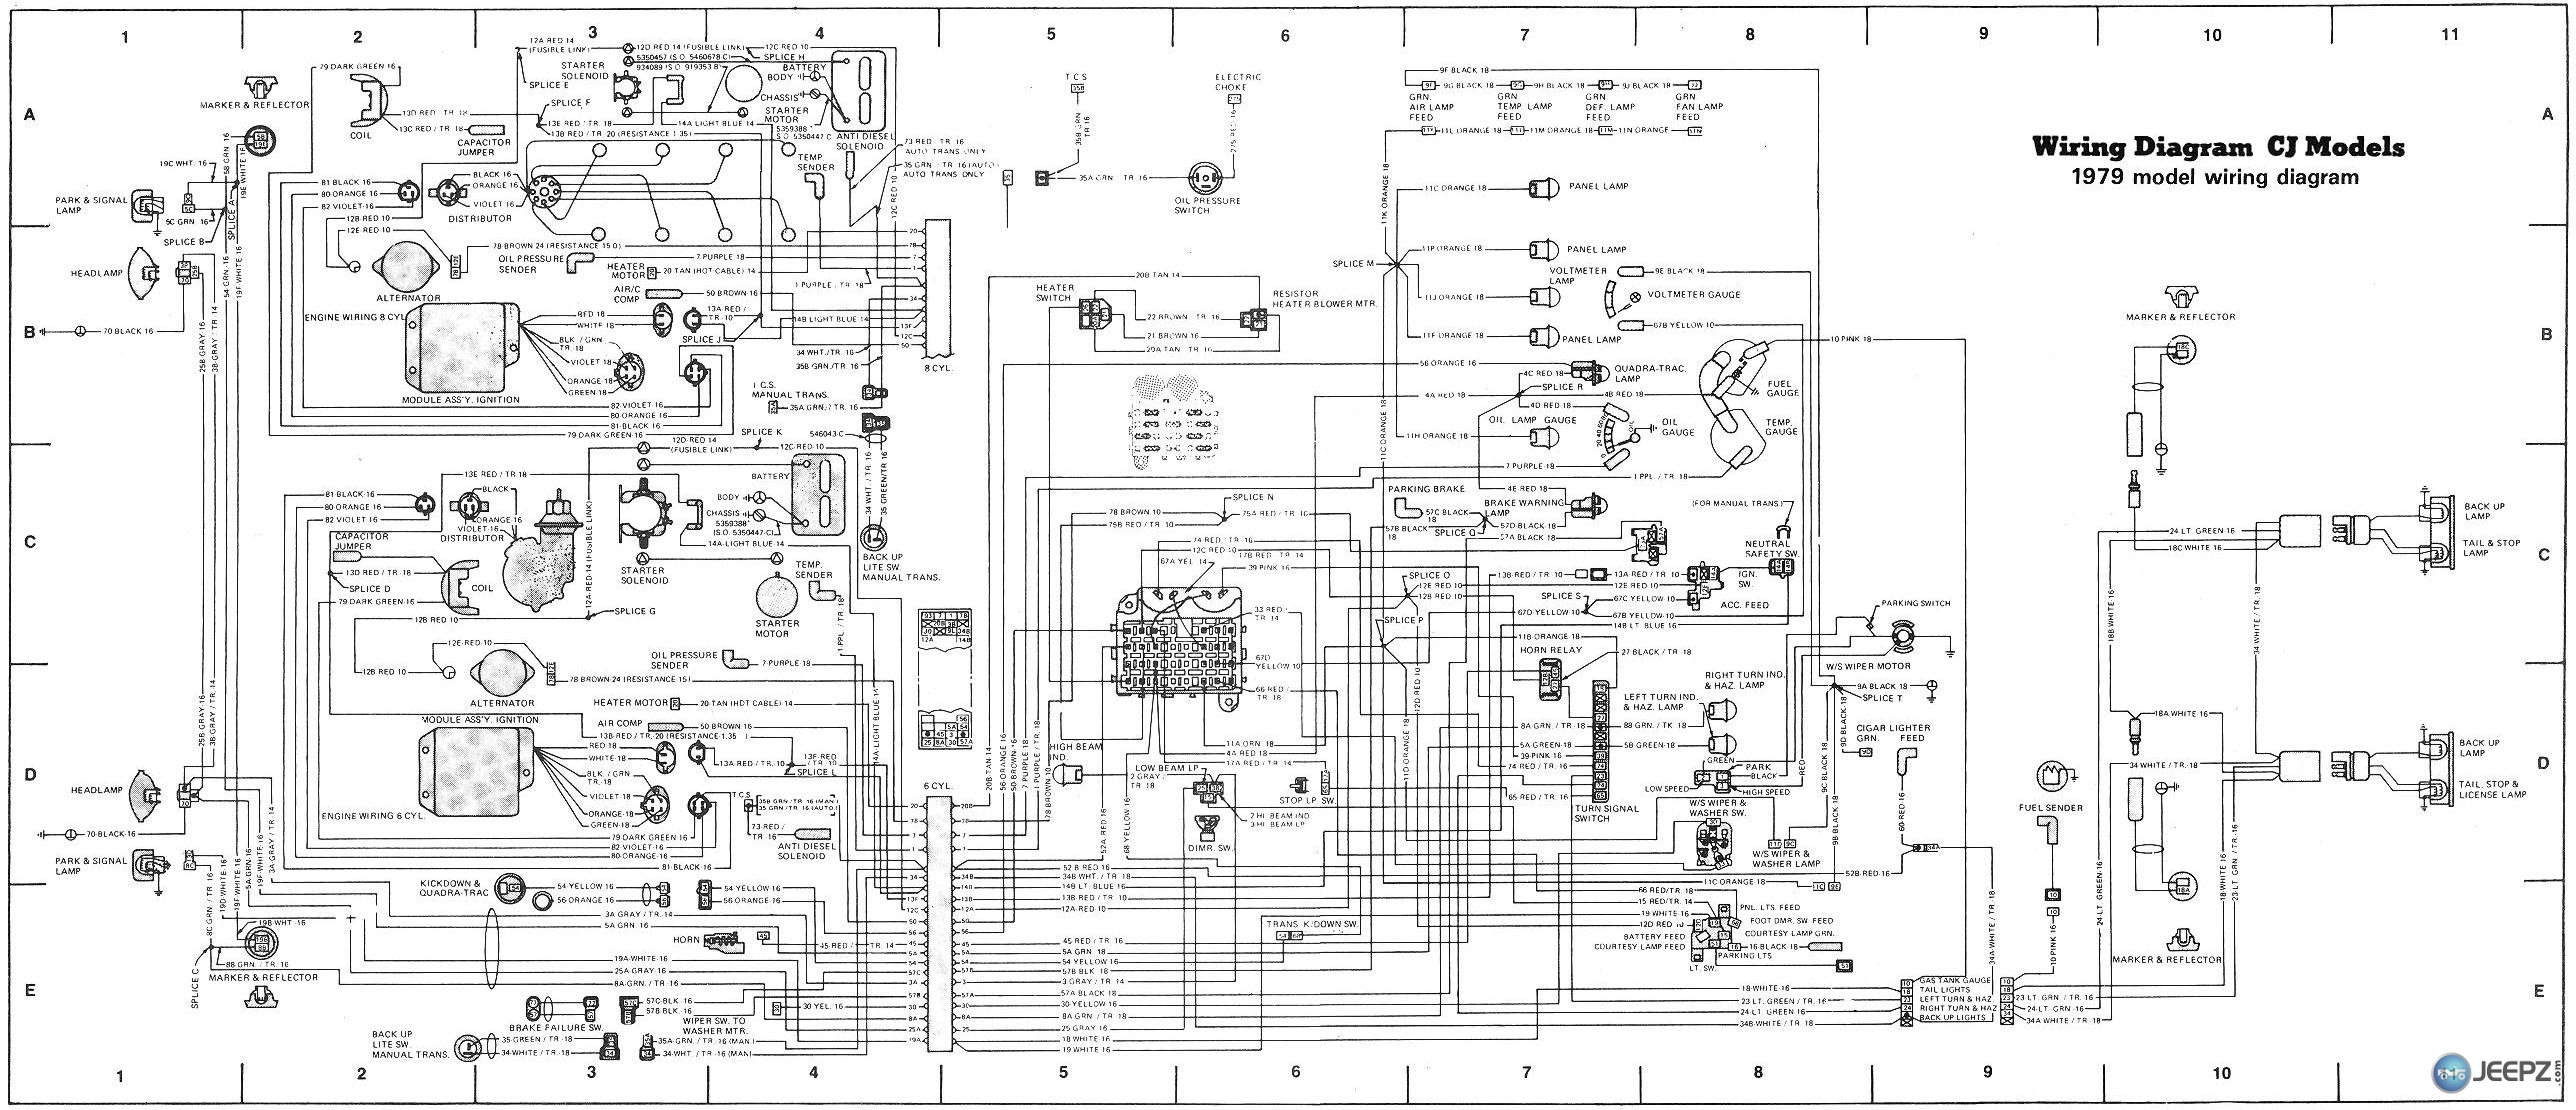 car headlight wiring diagram 2016 hyundai sonata jeep wire harness for 1976 online data audi cj7